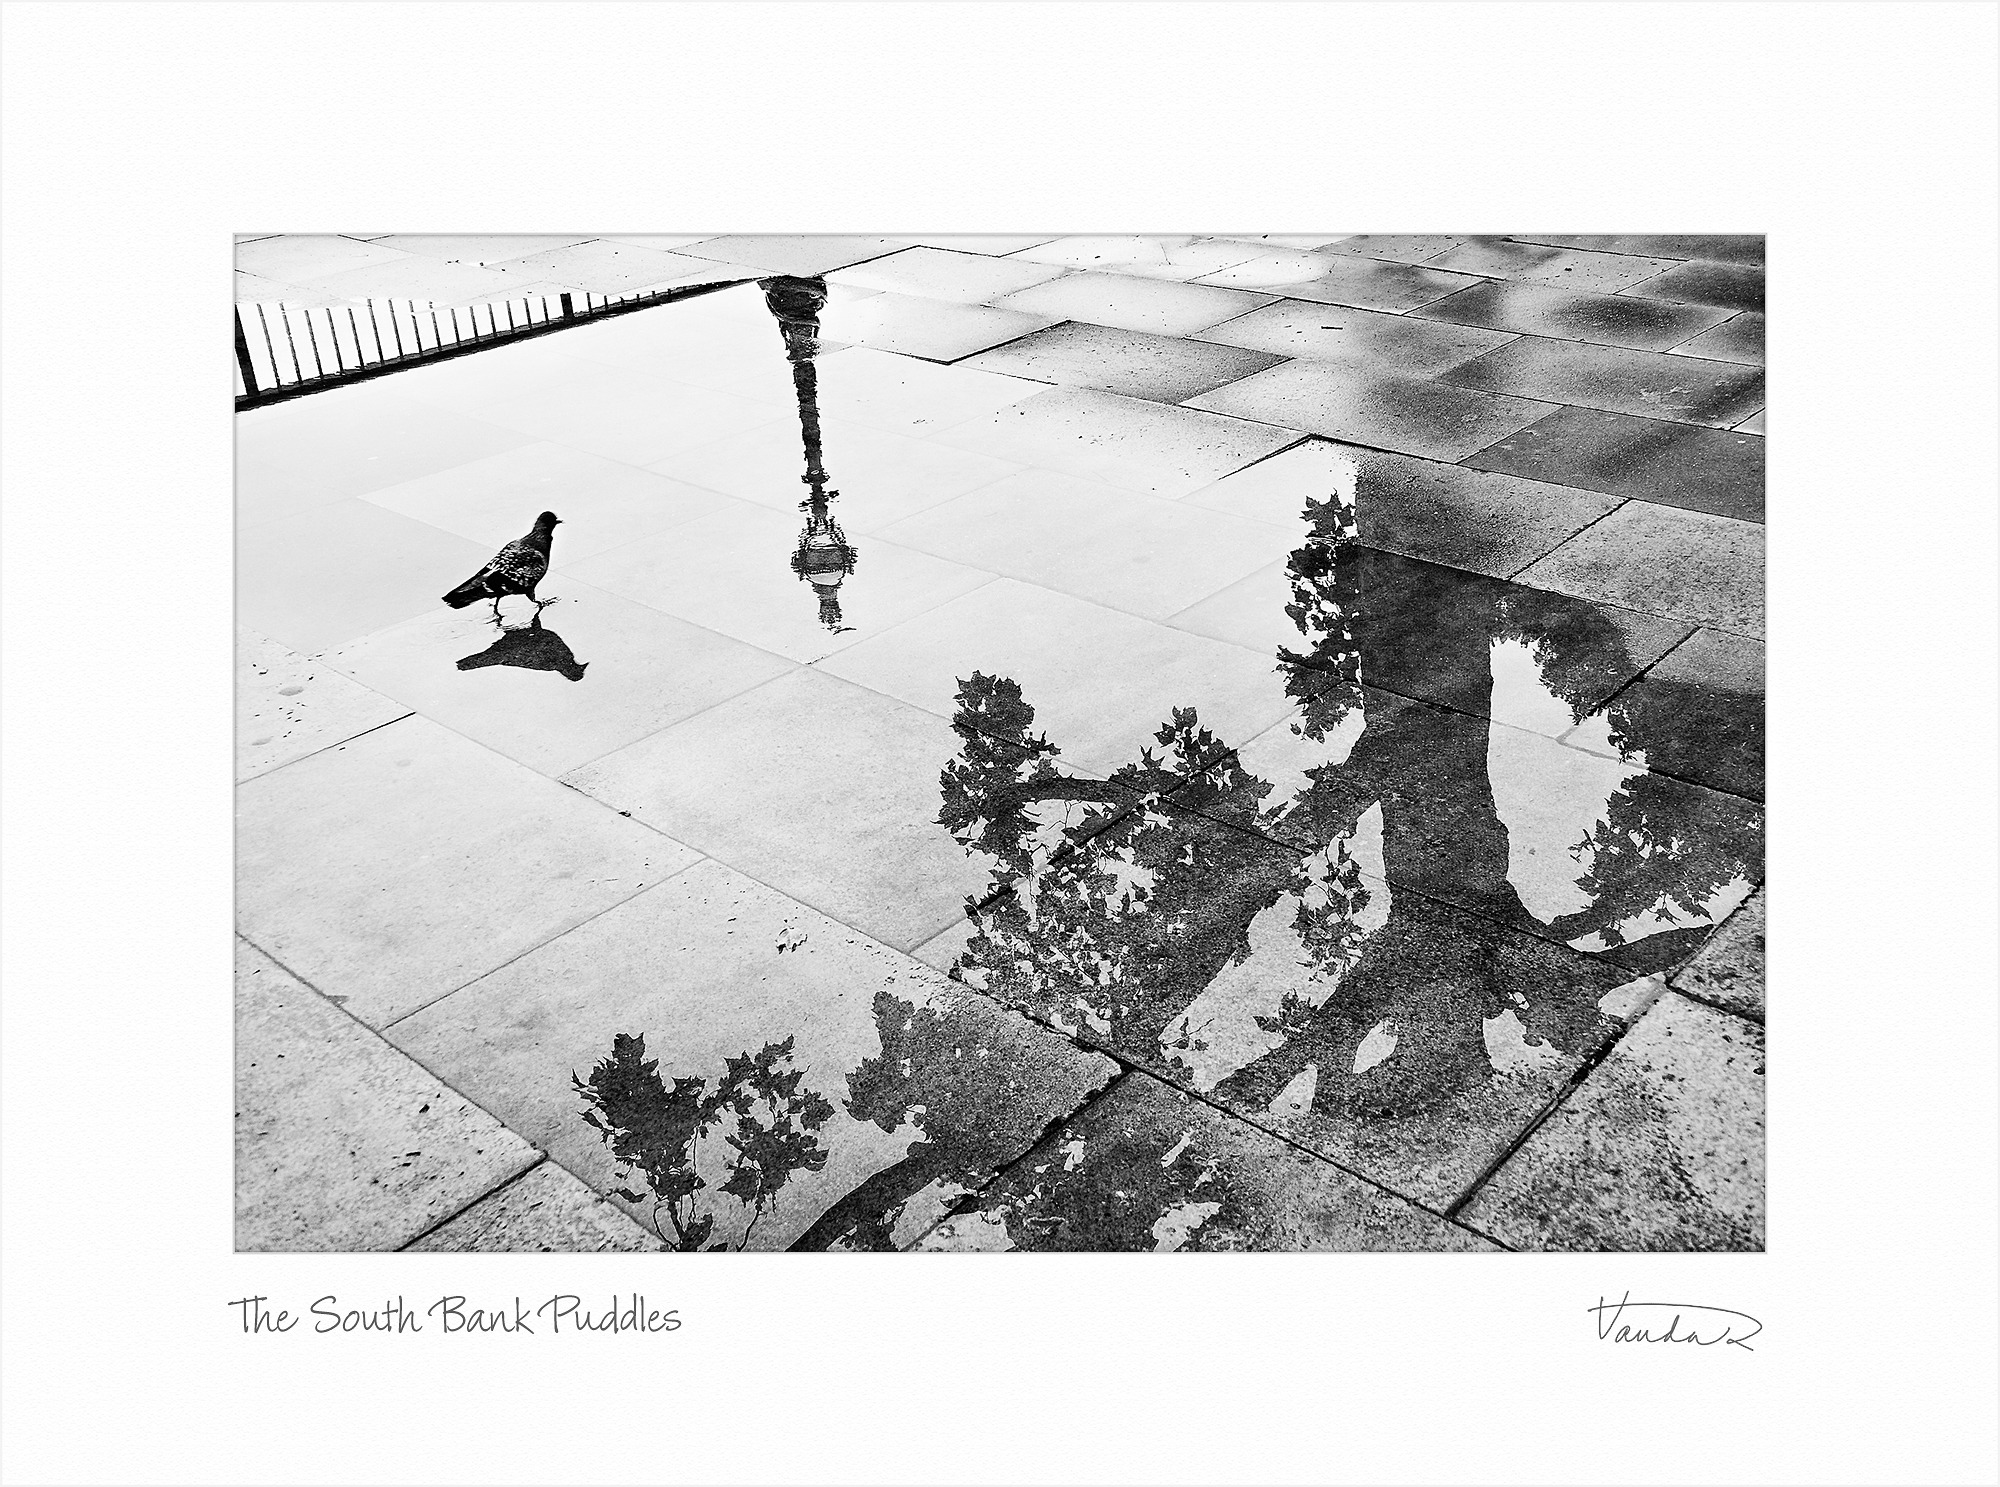 The South Bank Puddles